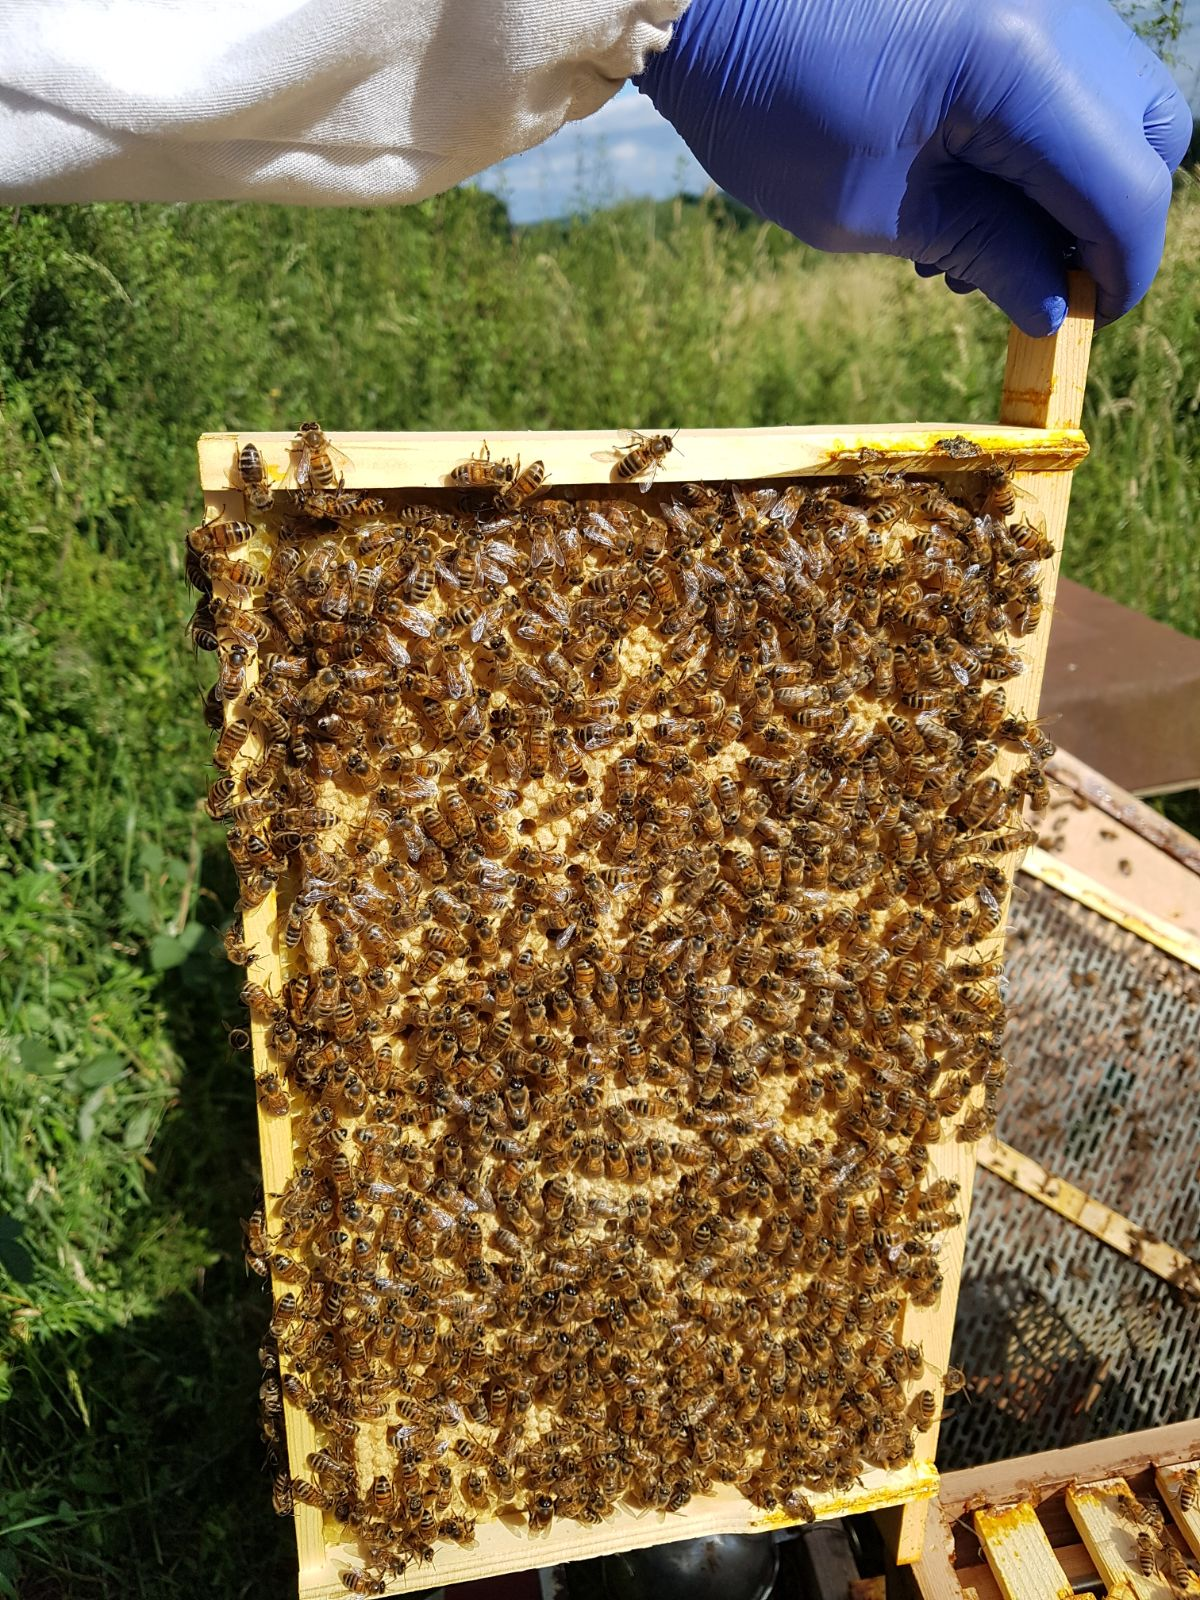 Frame of bees and brood